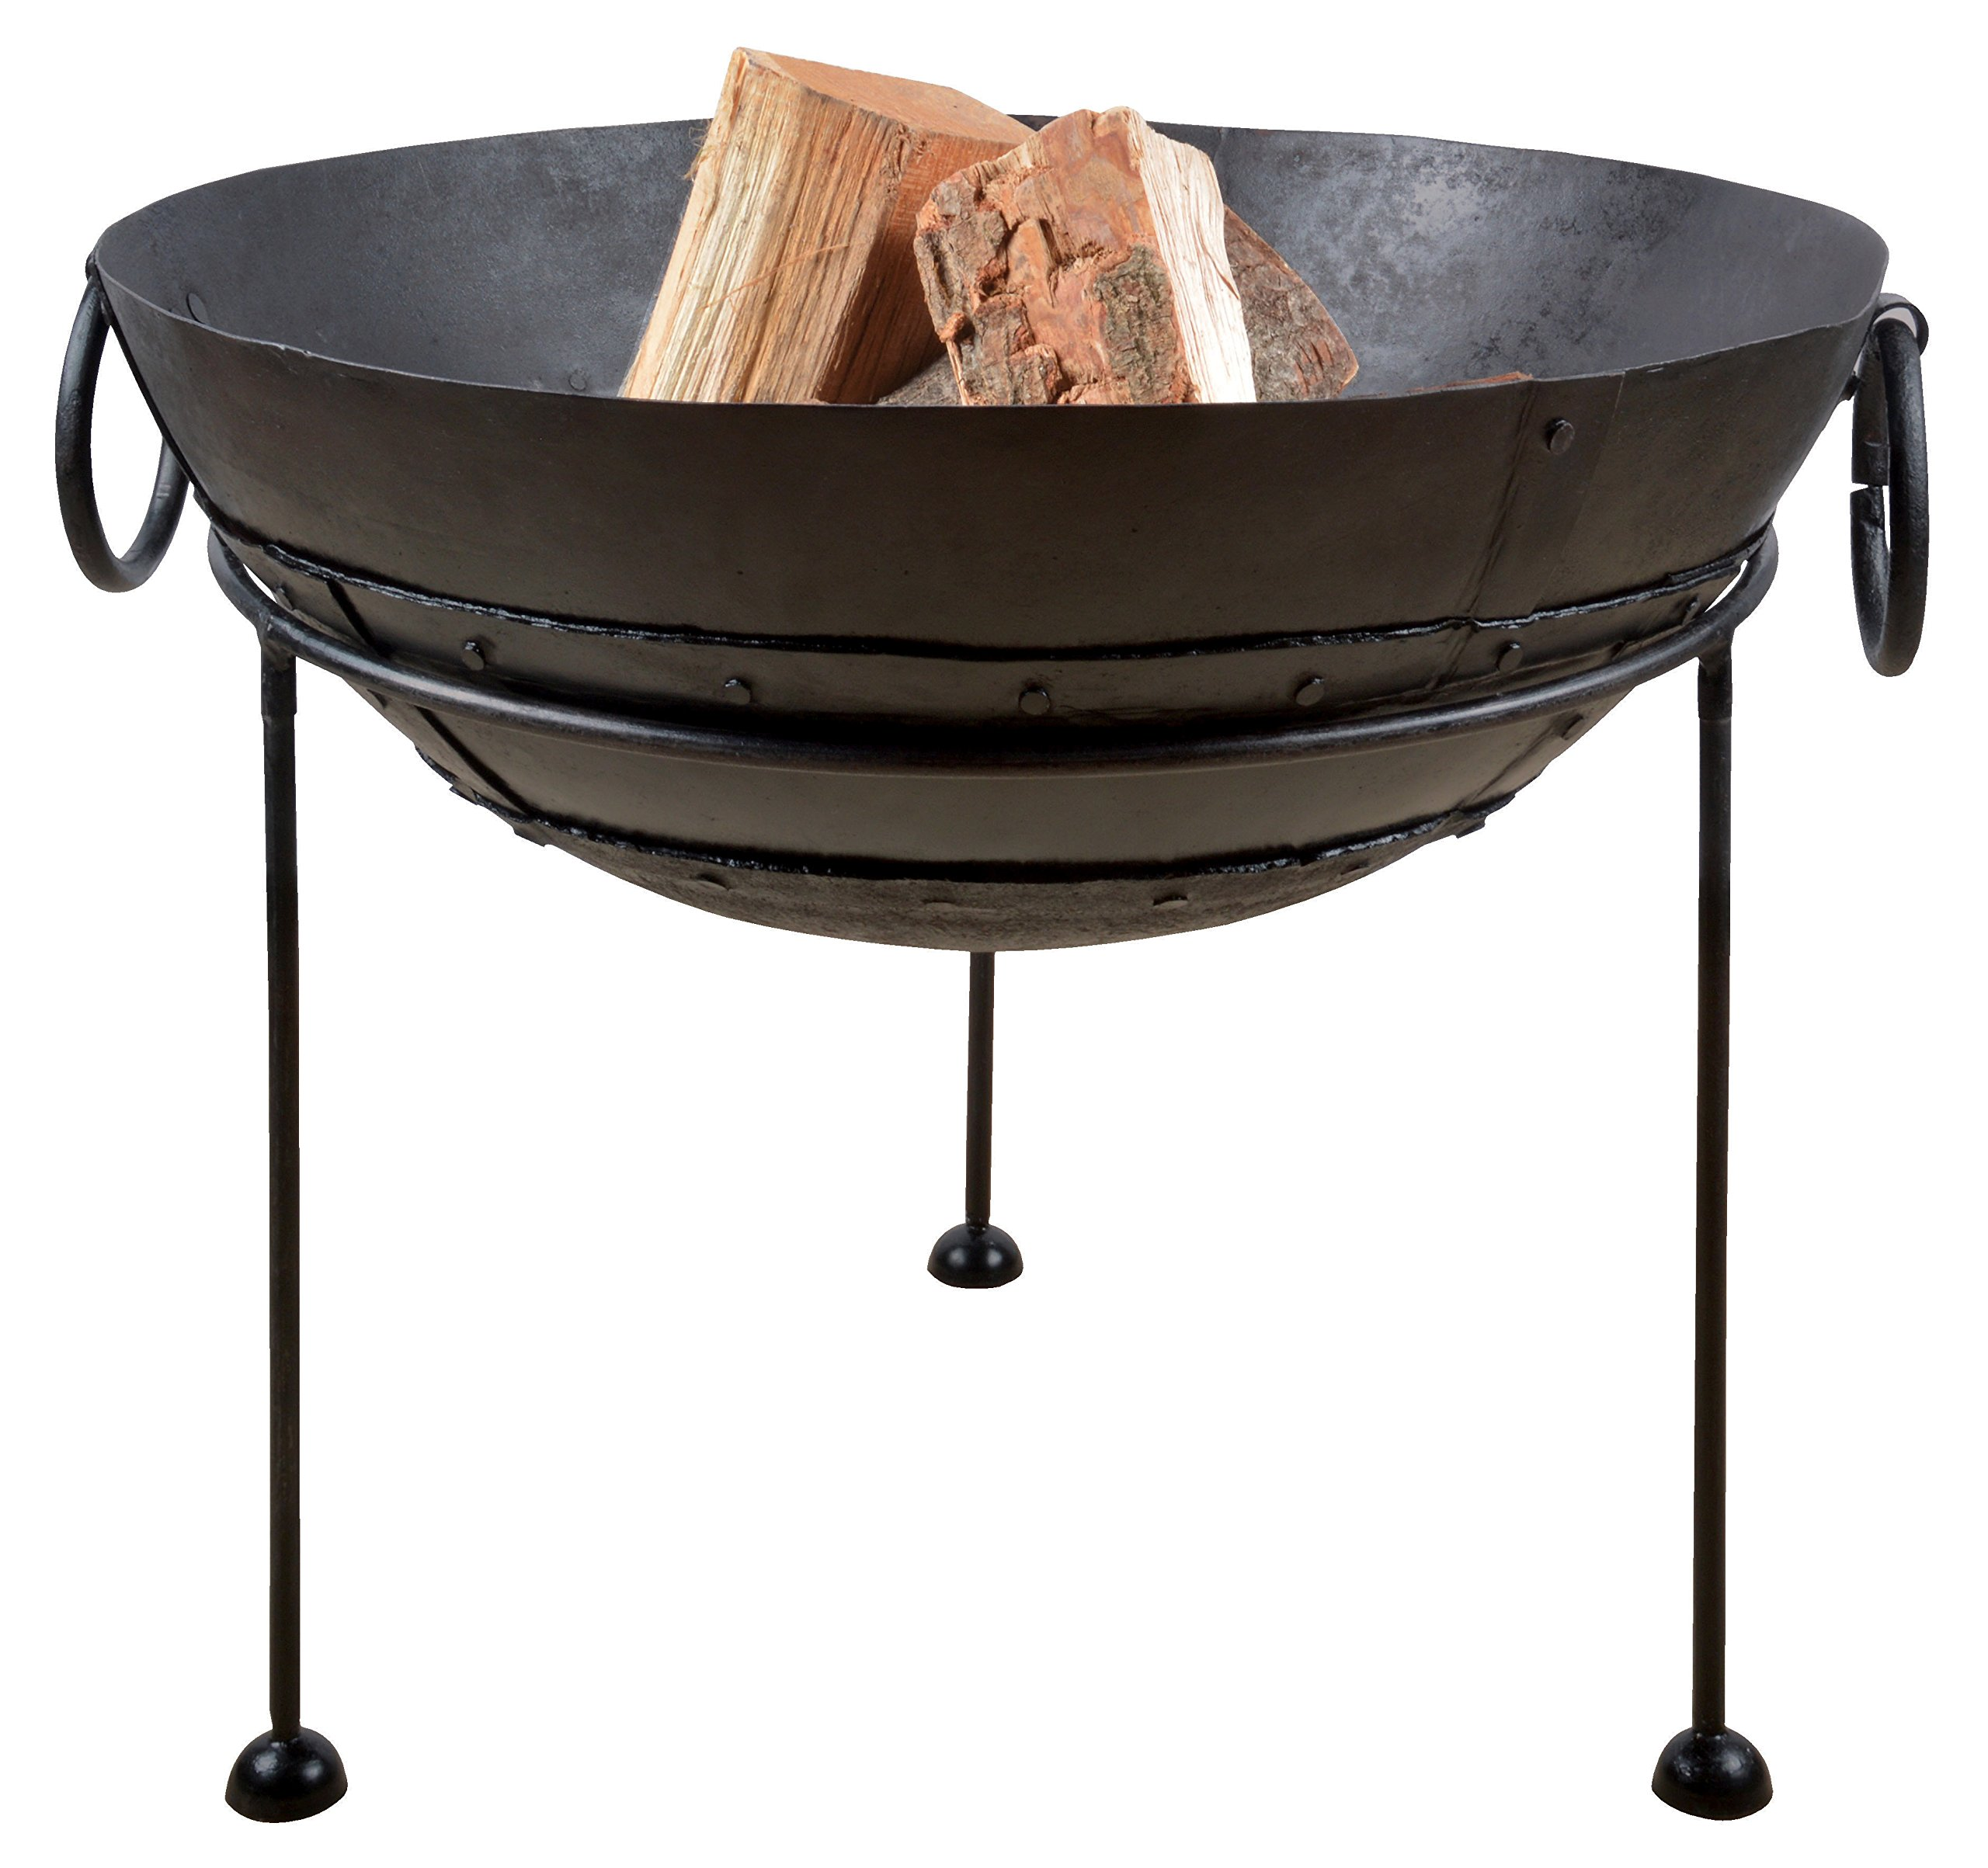 "Esschert Design FF246 Reclaimed Metal Fire Bowl, 60 cm - Medium durable metal fire bowl Black finish Measures approximately 22.89"" L x 19.7"" H x 23.87"" w - patio, fire-pits-outdoor-fireplaces, outdoor-decor - 81AZLb9Ye1L -"